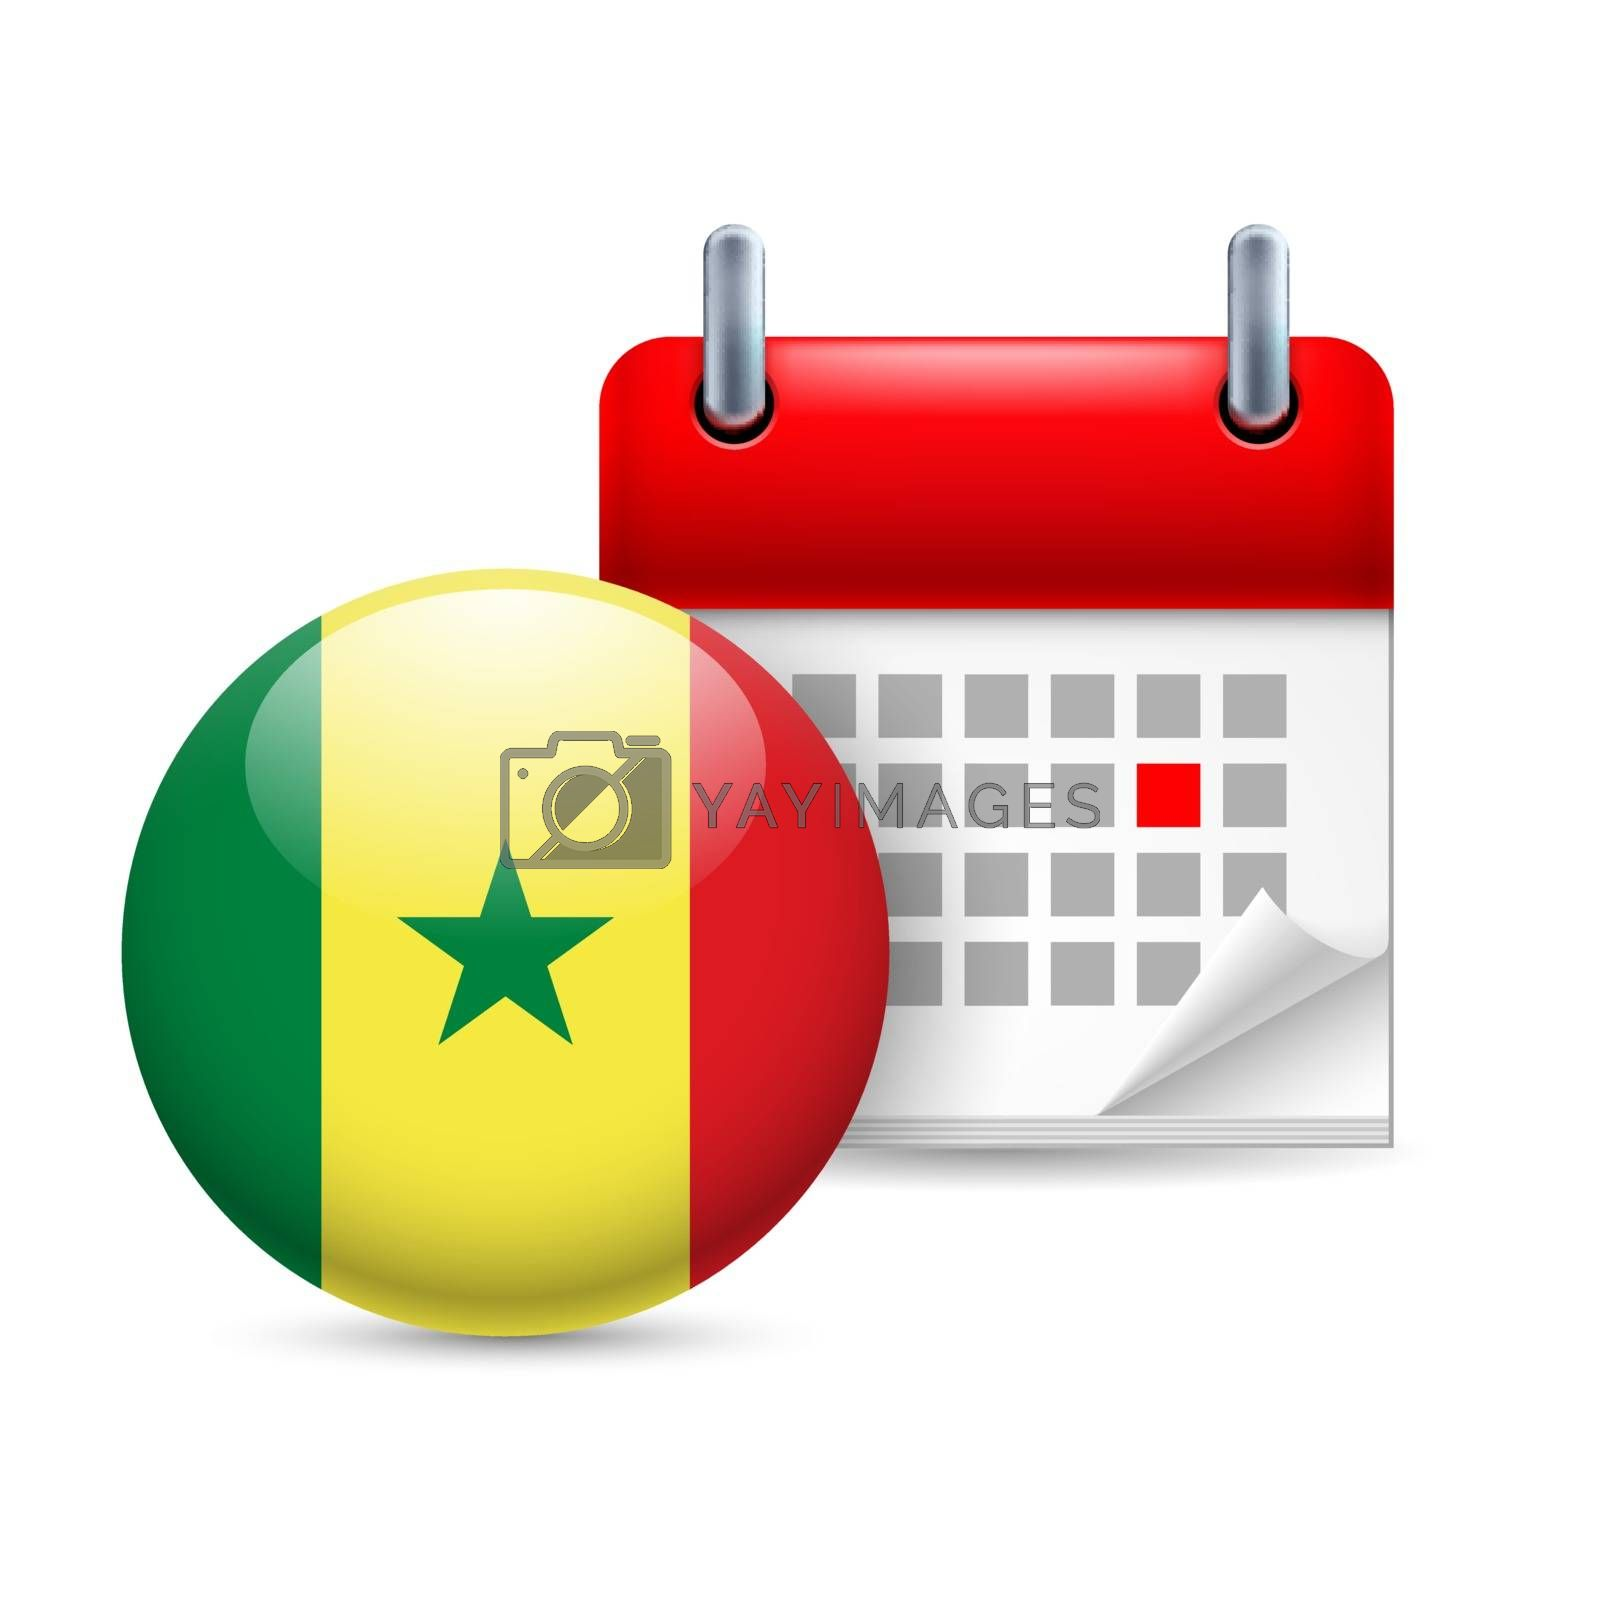 Royalty free image of Icon of National Day in Senegal by dvarg